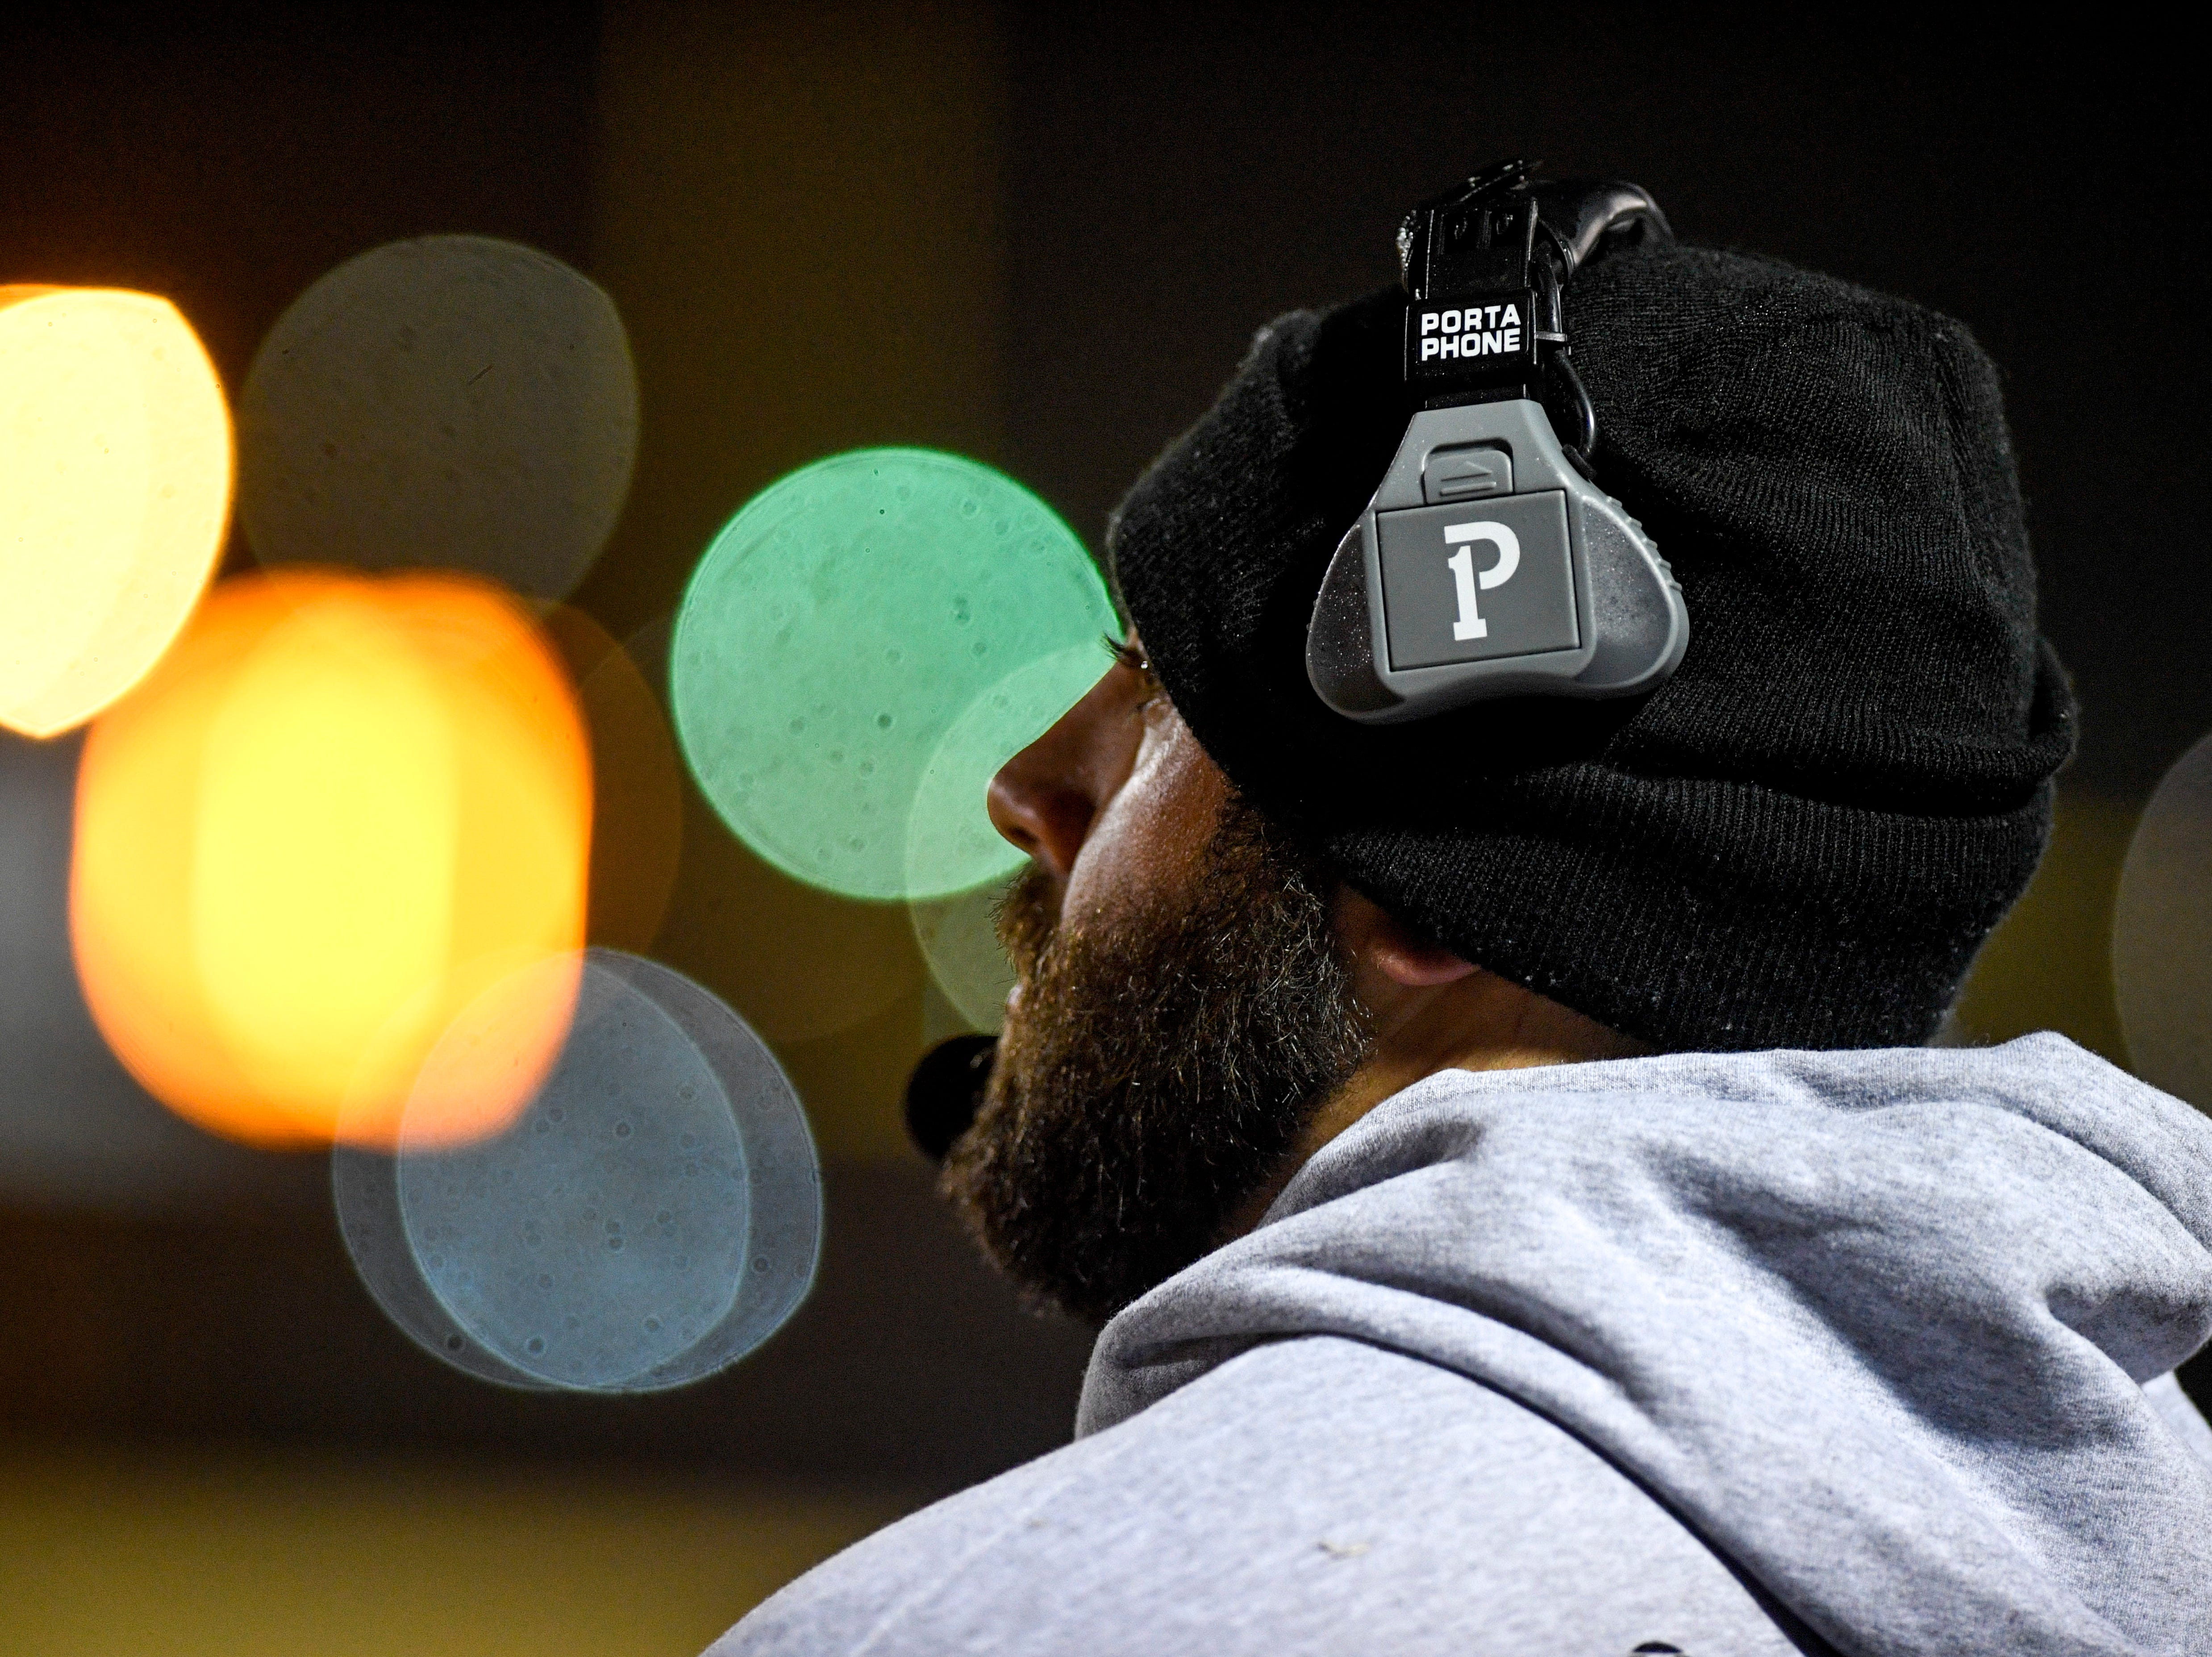 South Side's head coach Tyler Reeder looks out over the field during the West Tennessee All-Star football game at University School of Jackson in Jackson, Tenn., on Friday, Dec. 7, 2018.